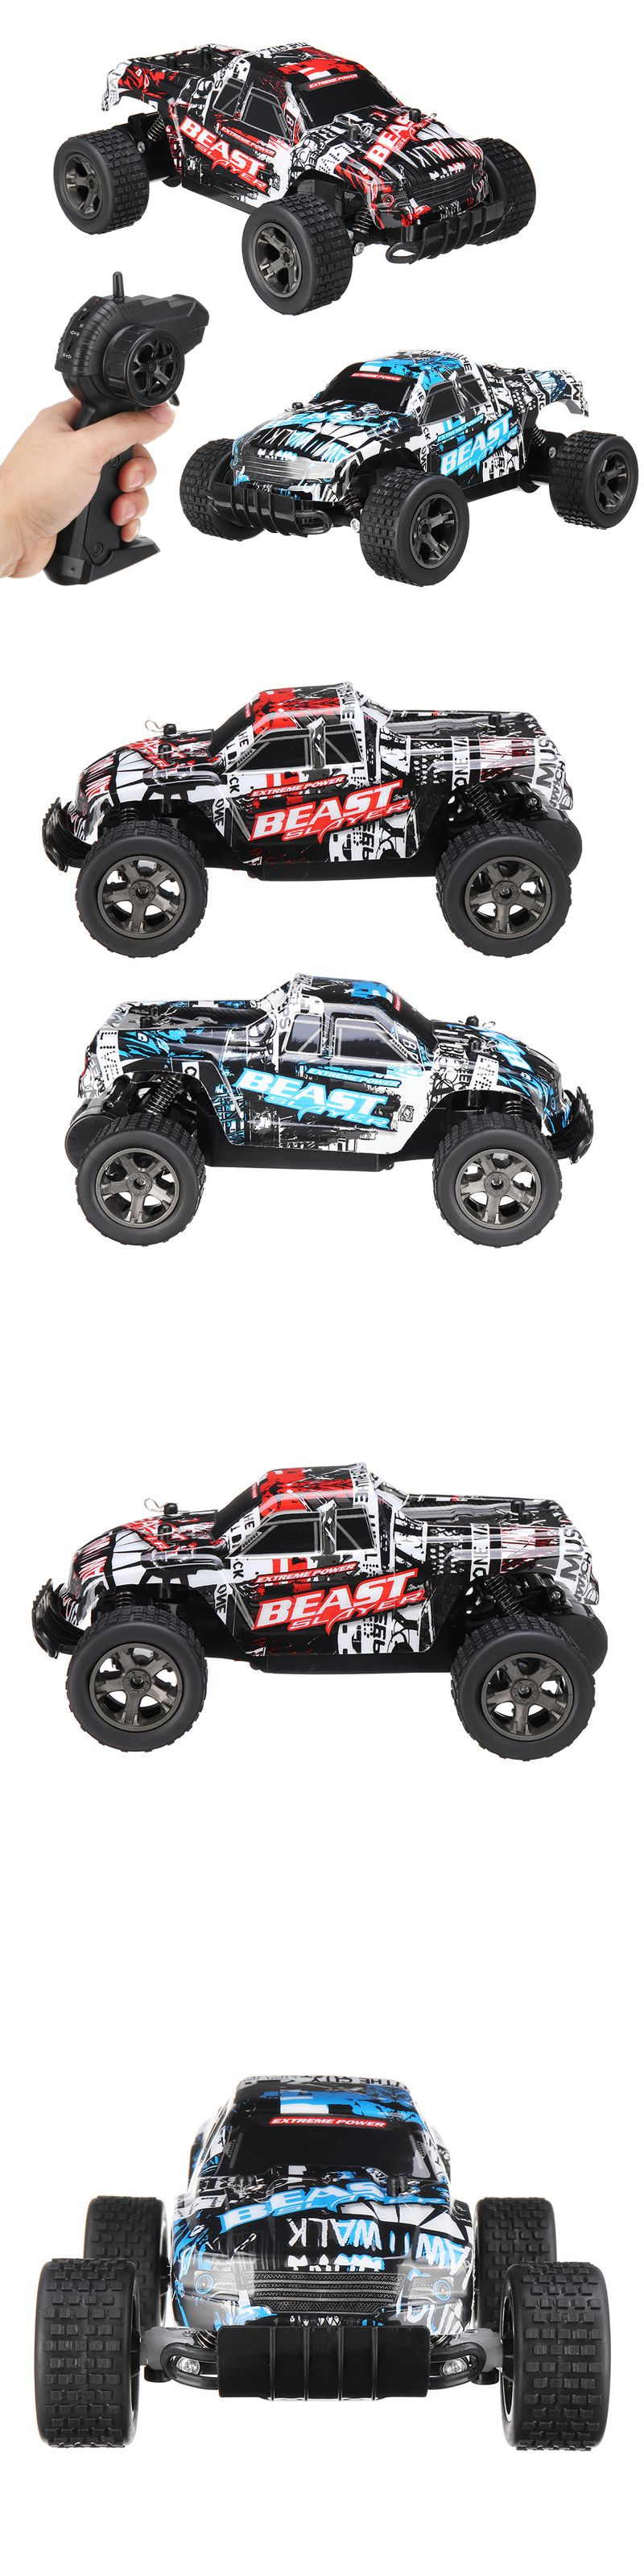 technology cars car Monster trucks, Rc cars, Remote